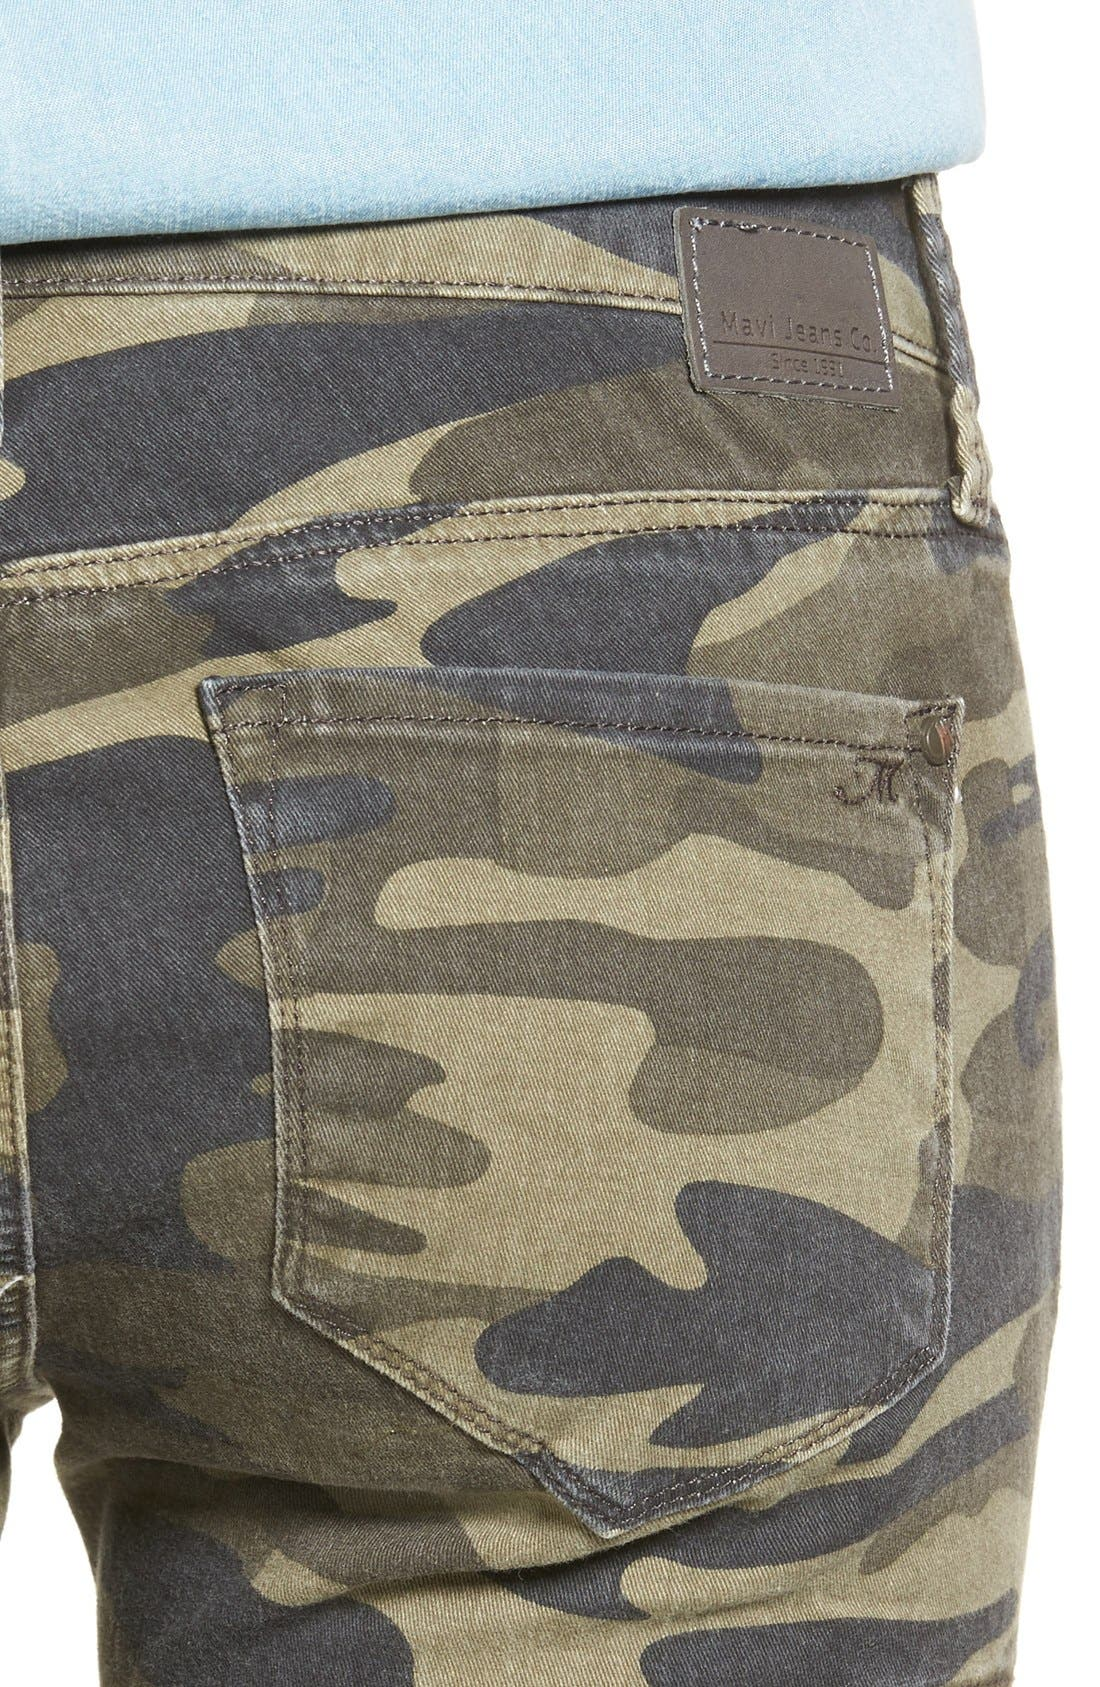 Juliette Camo Print Military Cargo Pants,                             Alternate thumbnail 5, color,                             MILITARY CAMOUFLAGE